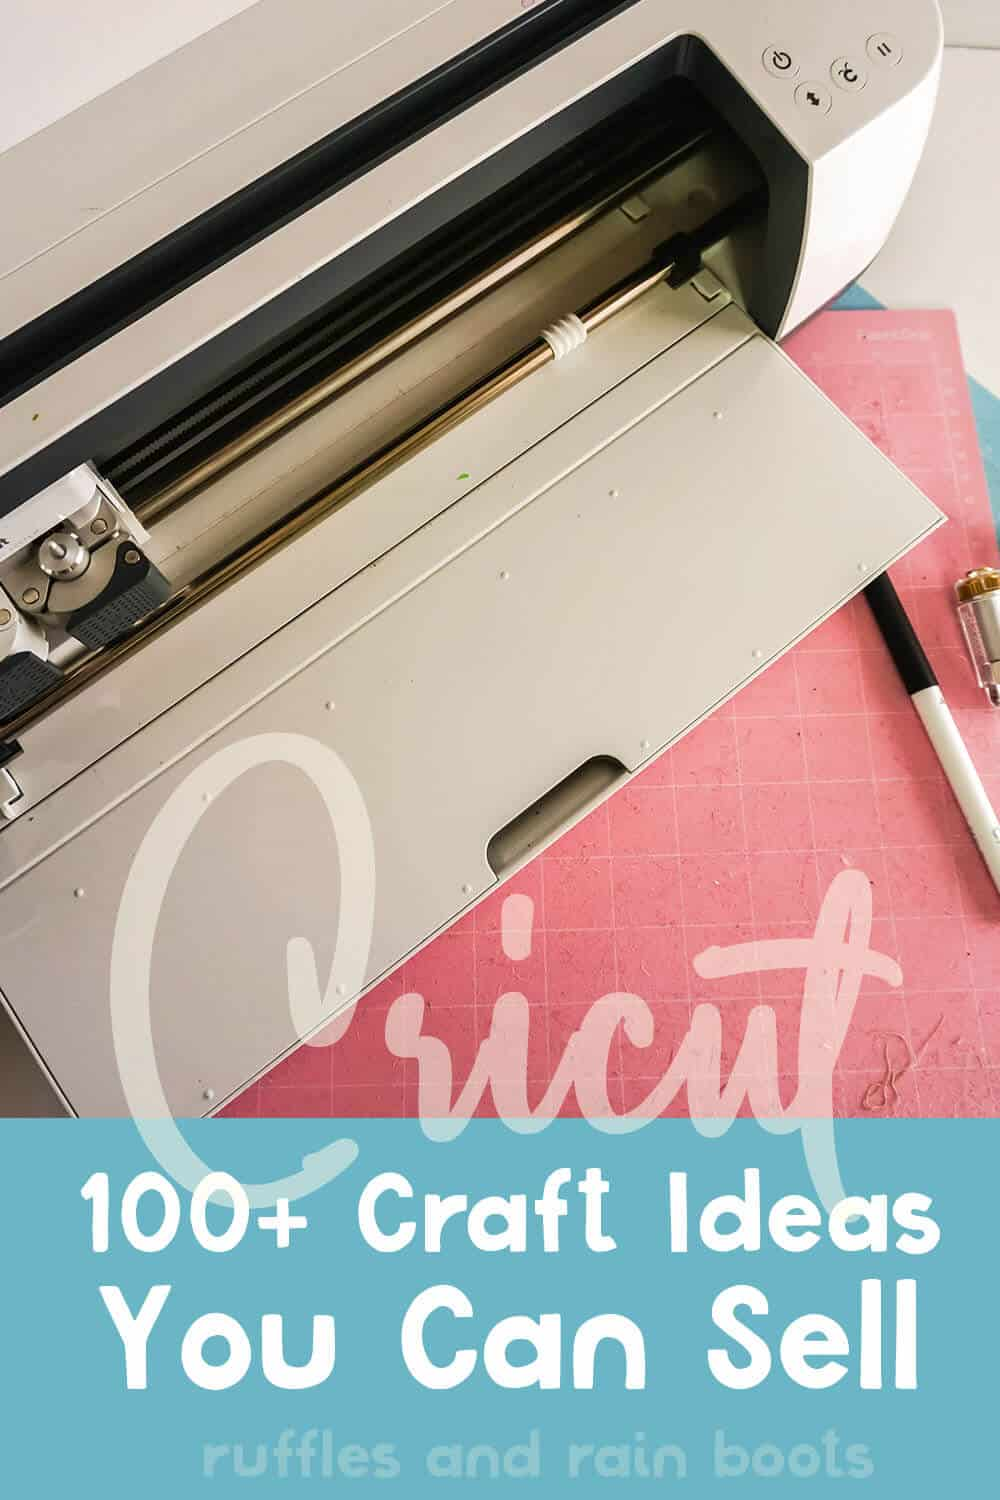 overhead view of cricut tools needed to make crafts to sell on etsy with text which reads cricut 100+ craft ideas you can sell